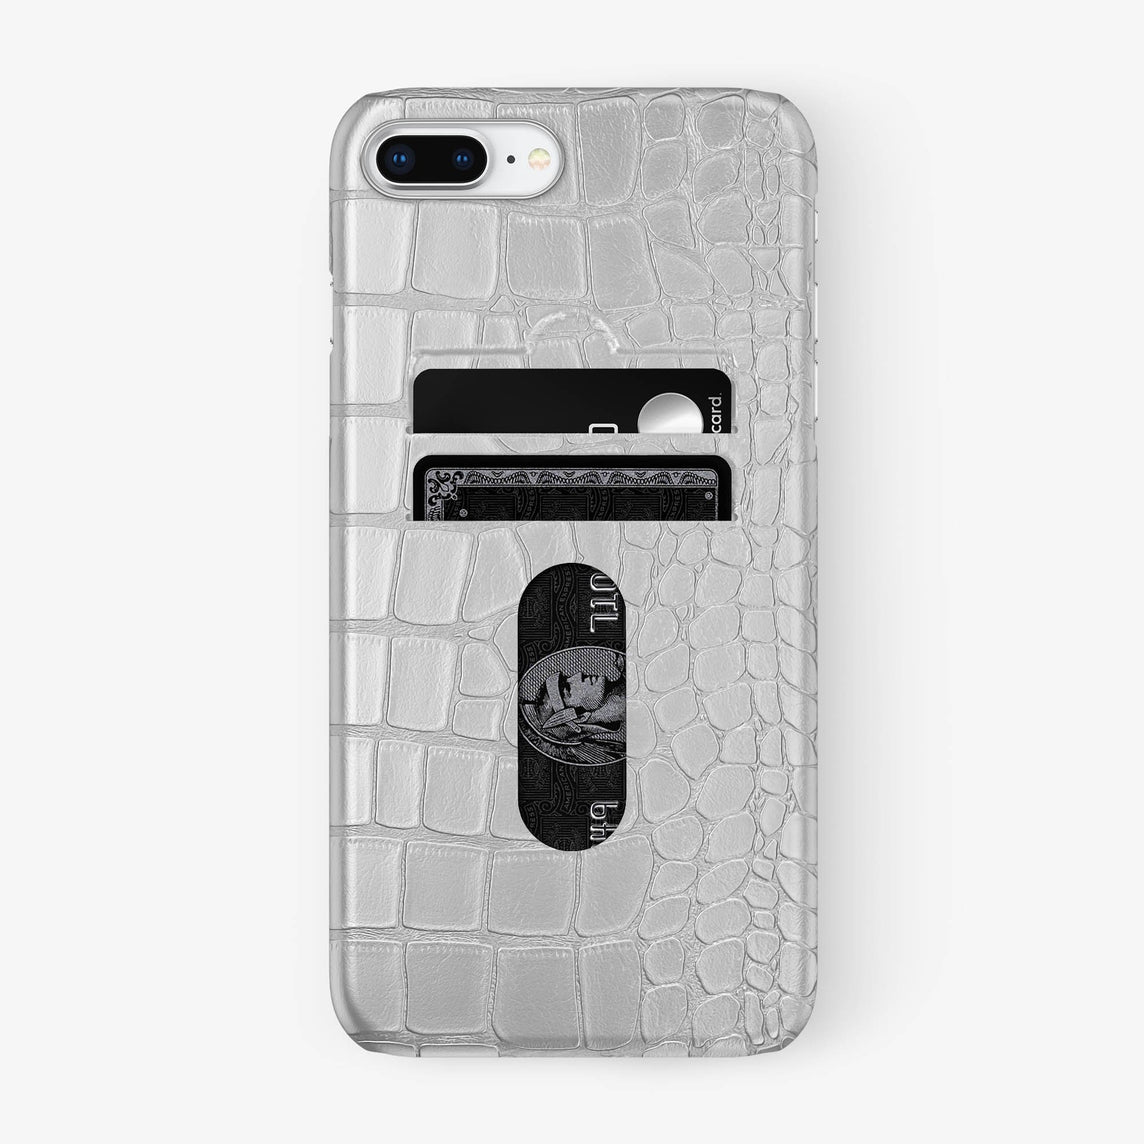 Alligator Card Holder Case iPhone 7/8 Plus | White - Stainless Steel - Hadoro